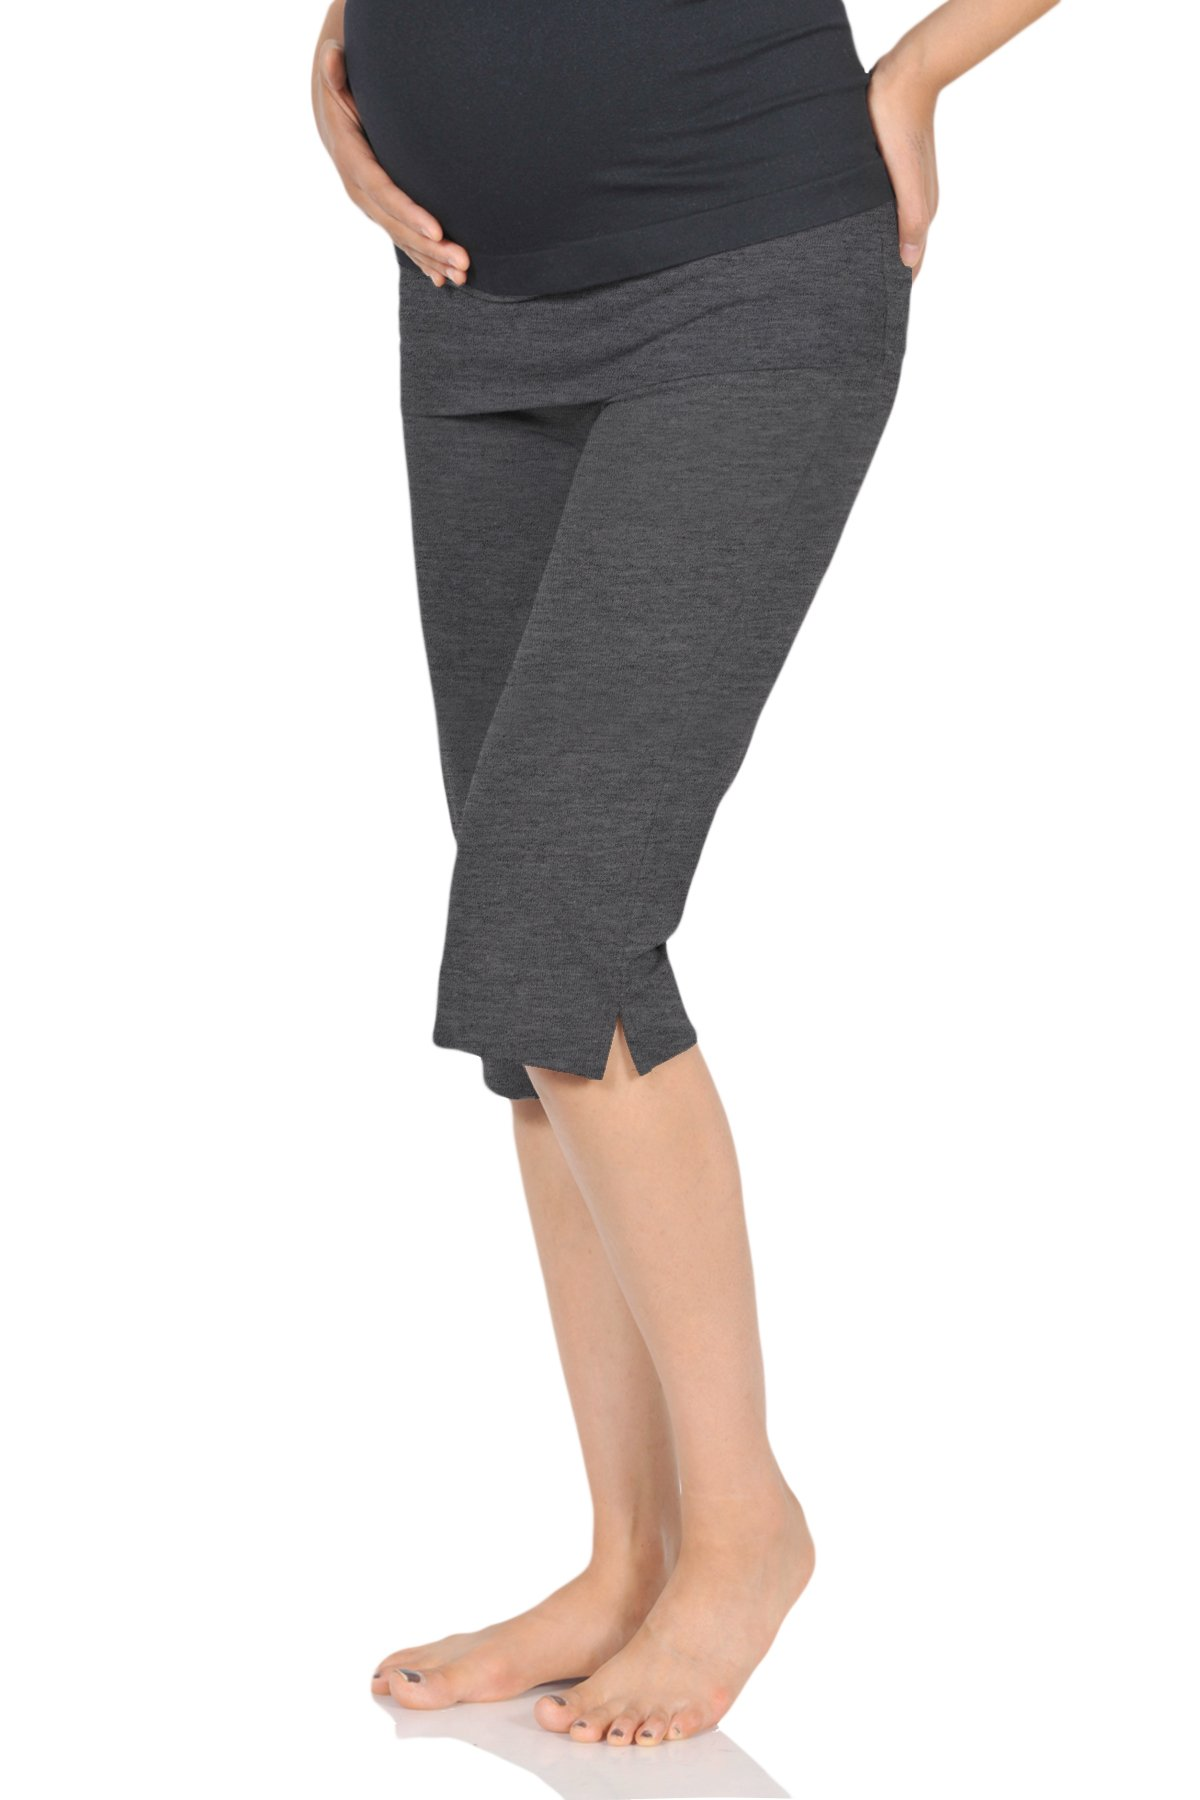 Beachcoco Women's Maternity Comfortable Knee Cropped Active Lounge Pants (XL, Charcoal)